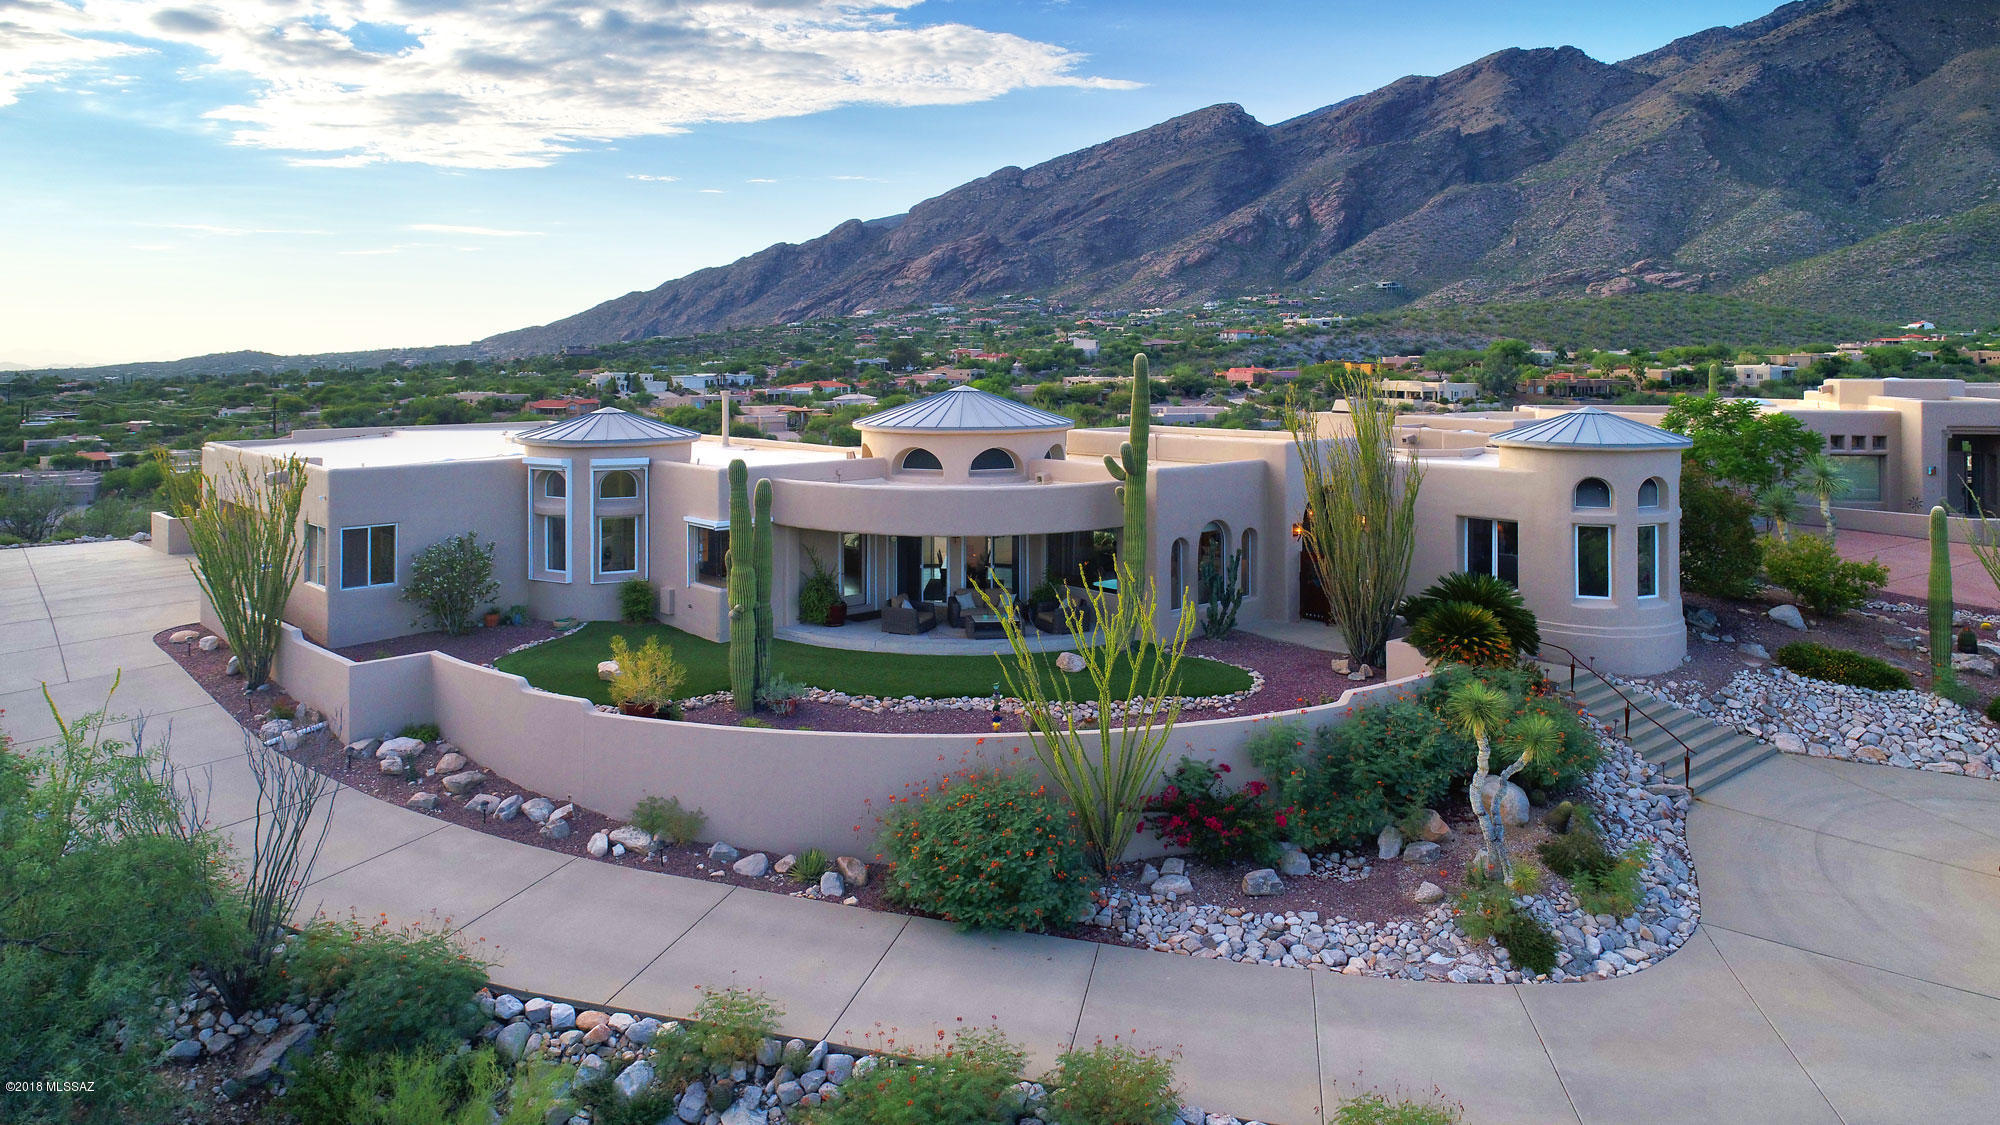 Tucson Homes on 1+ Acres Real Estate for Sale